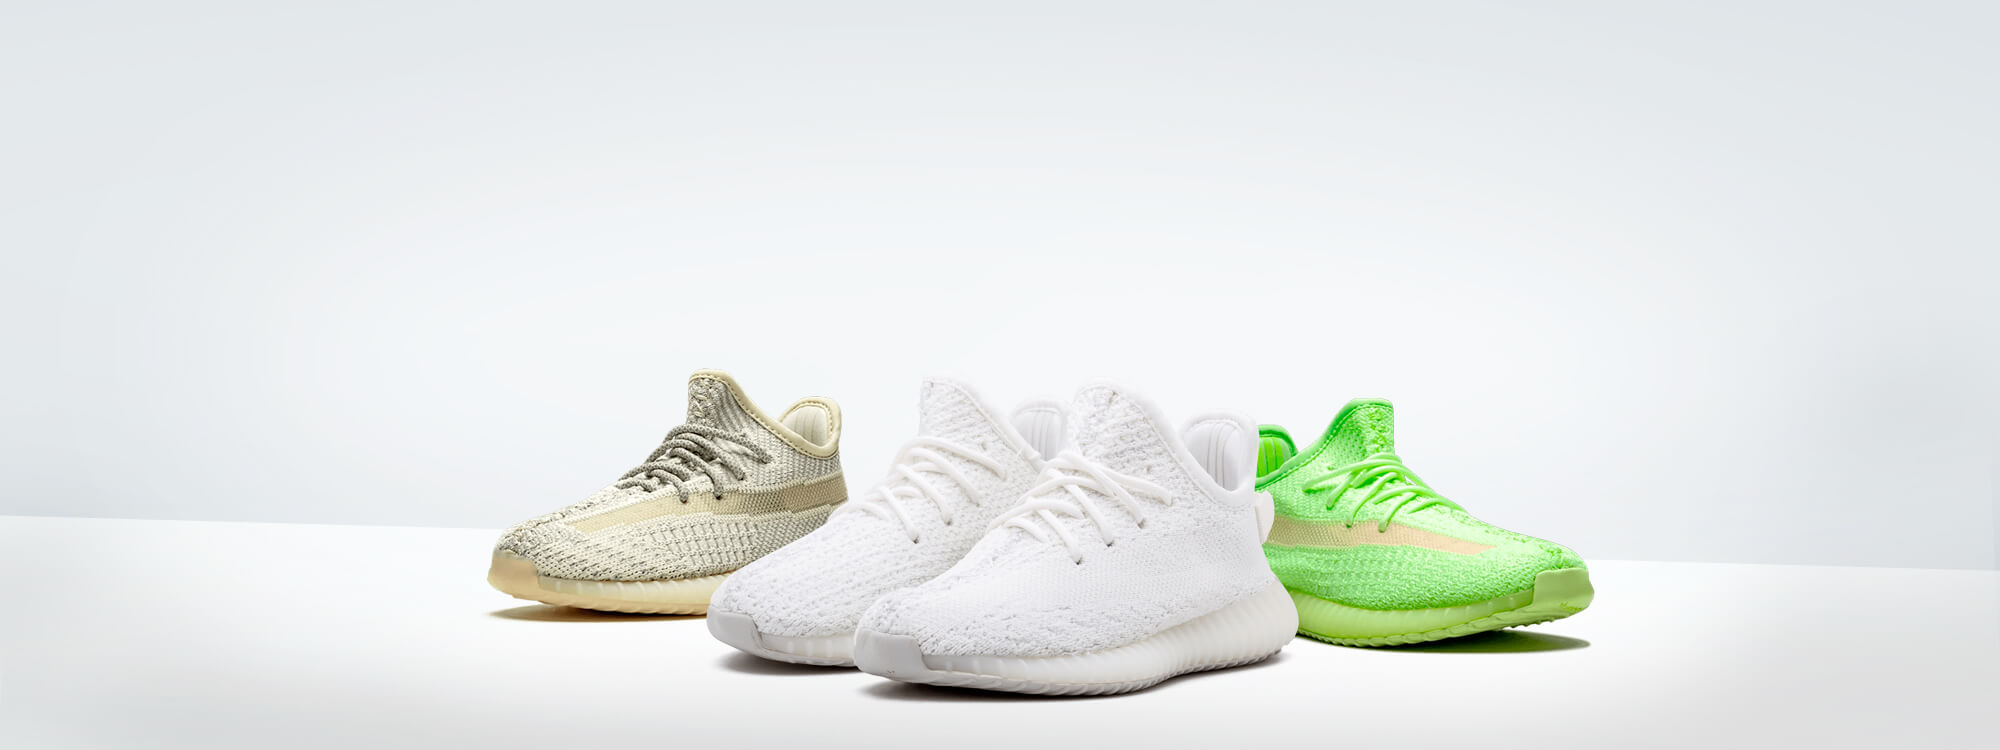 Adidas Yeezy Boost Kids  must-have running inspiration